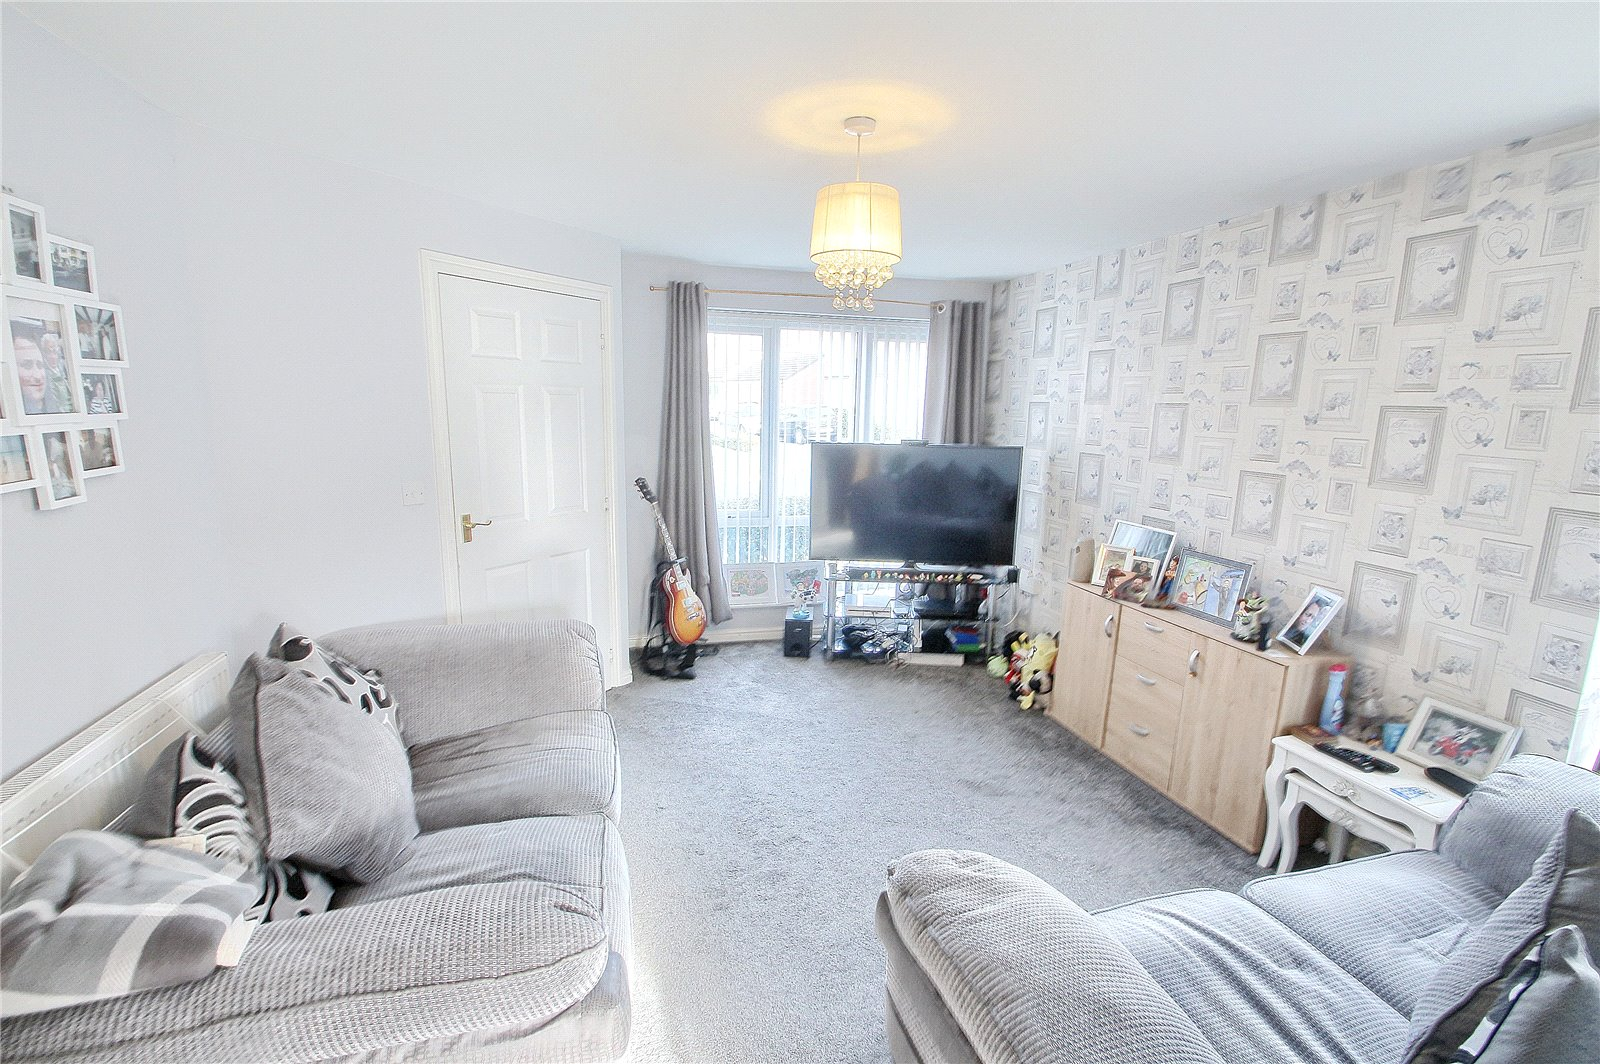 4 bed house for sale in Crimdon Beck Close, Whitewater Glade  - Property Image 4